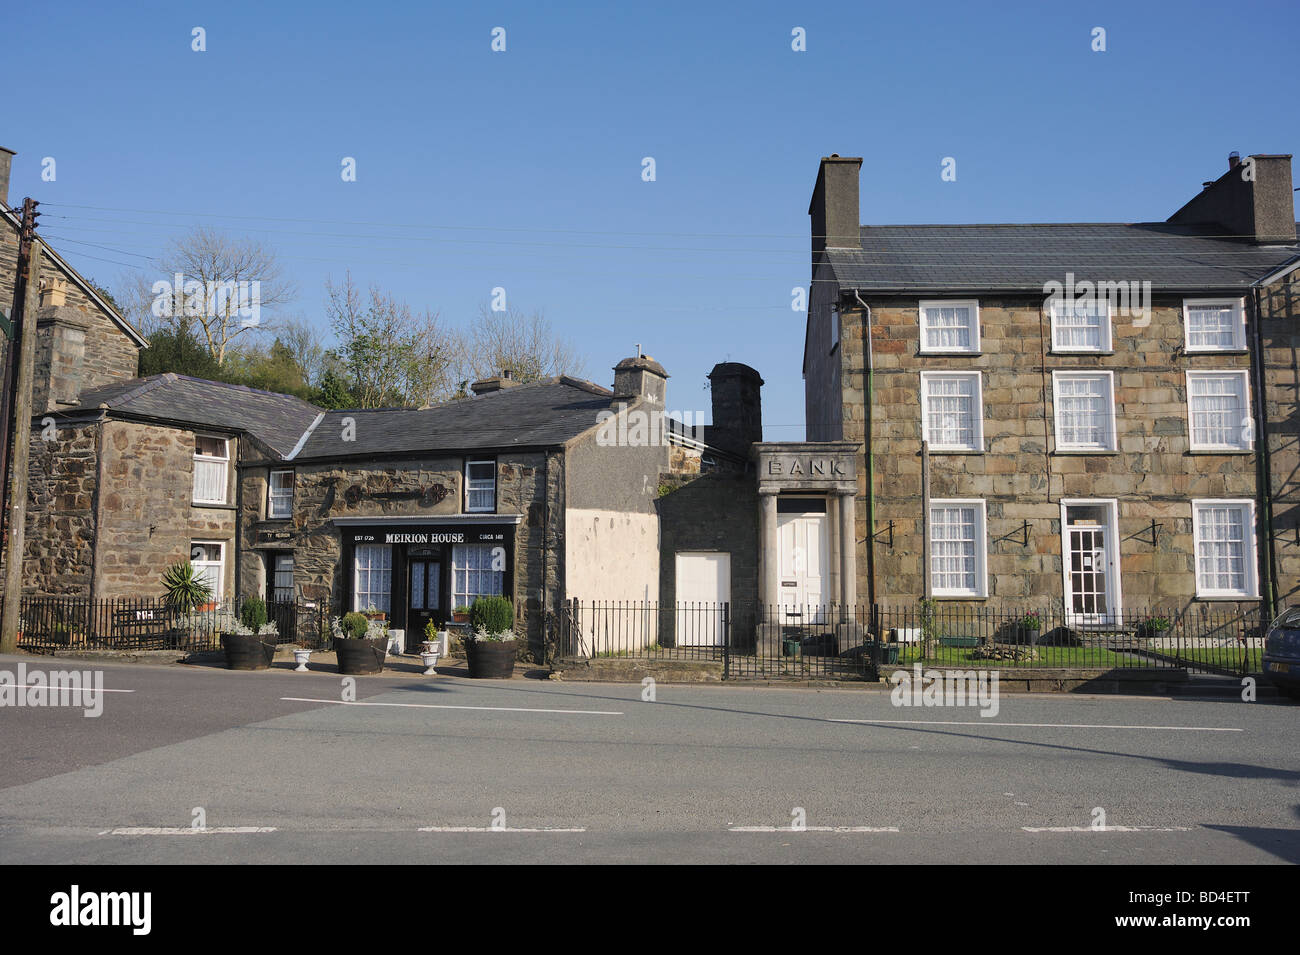 Former shop and bank buildings in Llan Ffestiniog, North Wales which have ceased trading and become private homes. - Stock Image